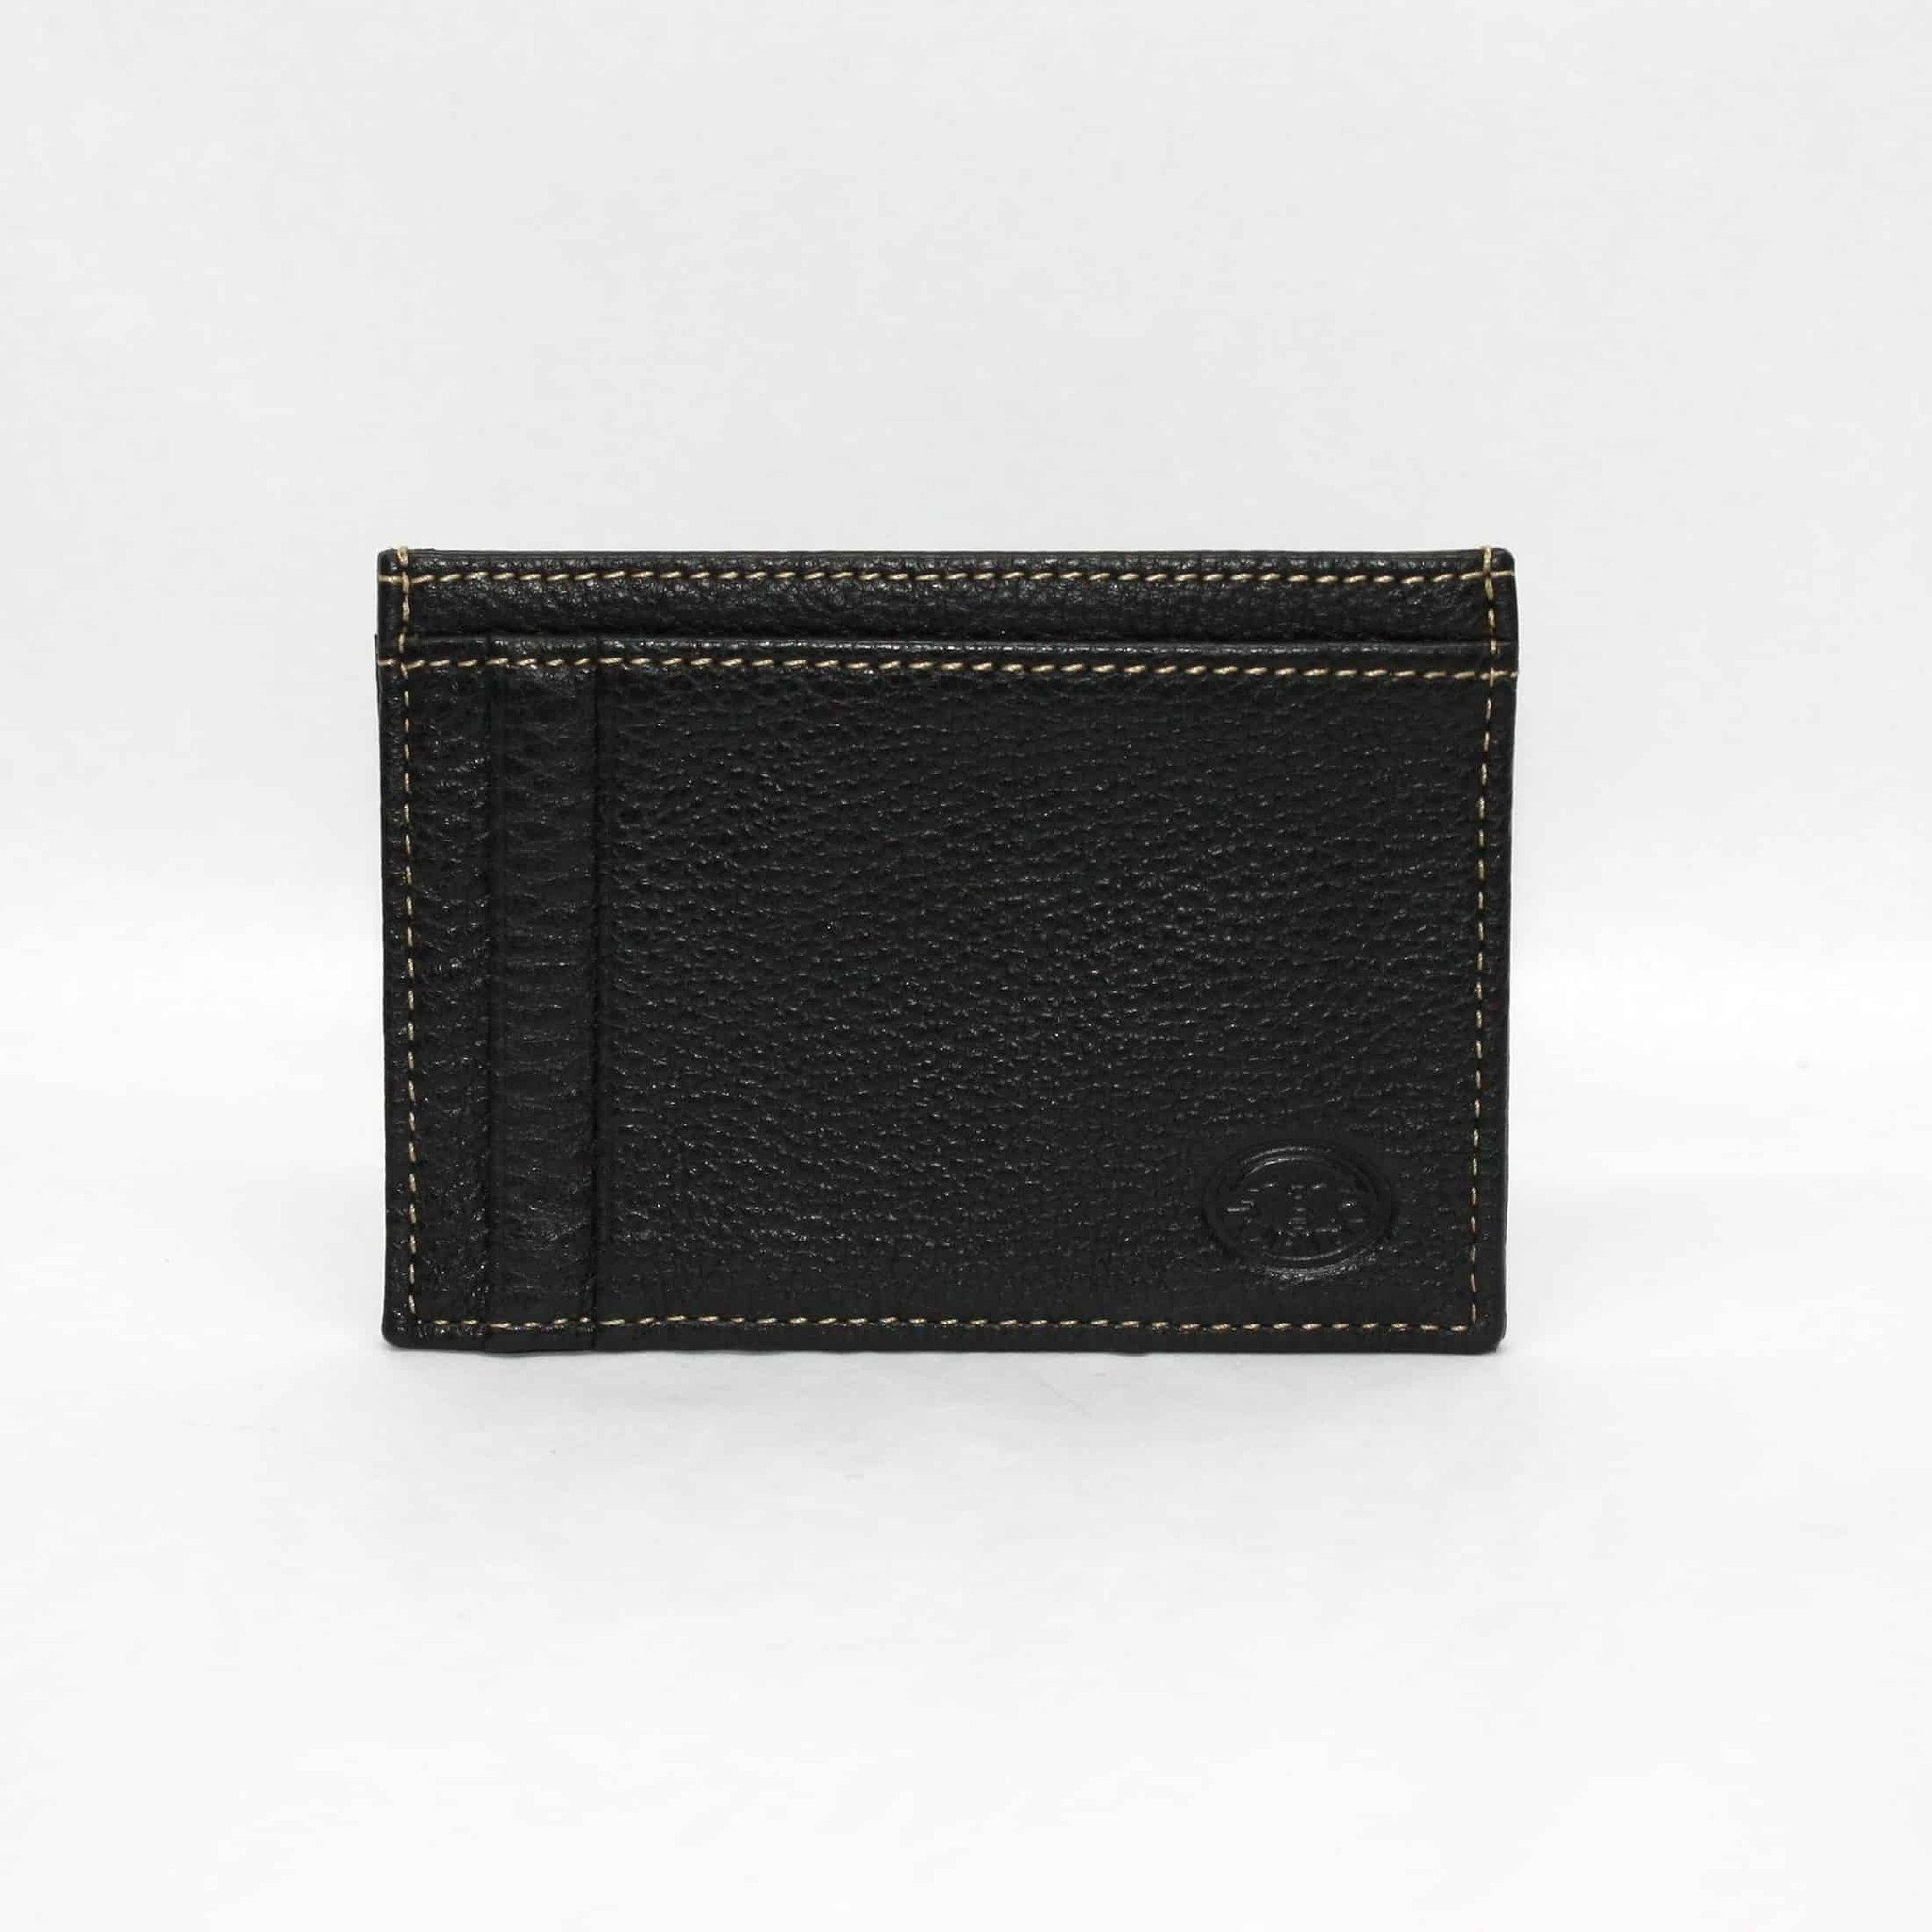 Tumbled Glove Leather ID/Card Case - Black,WALLETS,GentRow.com, | GentRow.com